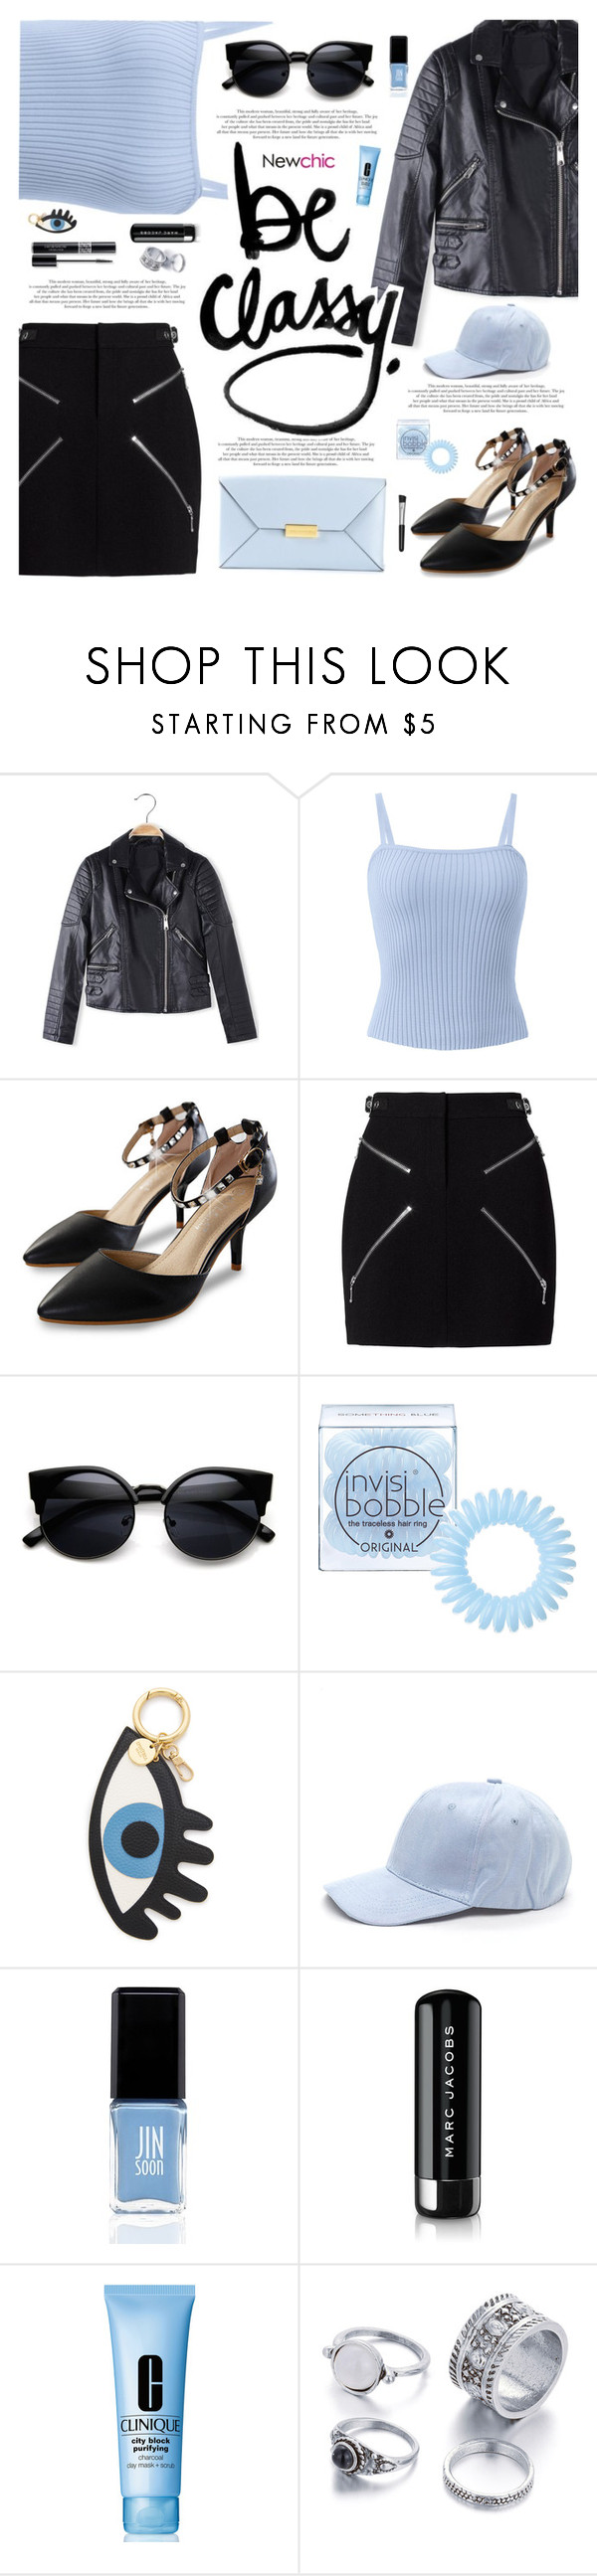 """Lovenewchic #23"" by katarinamm ❤ liked on Polyvore featuring Alexander Wang, STELLA McCARTNEY, Invisibobble, Iphoria, Christian Dior, JINsoon, Marc Jacobs, Clinique, Sephora Collection and motojackets"